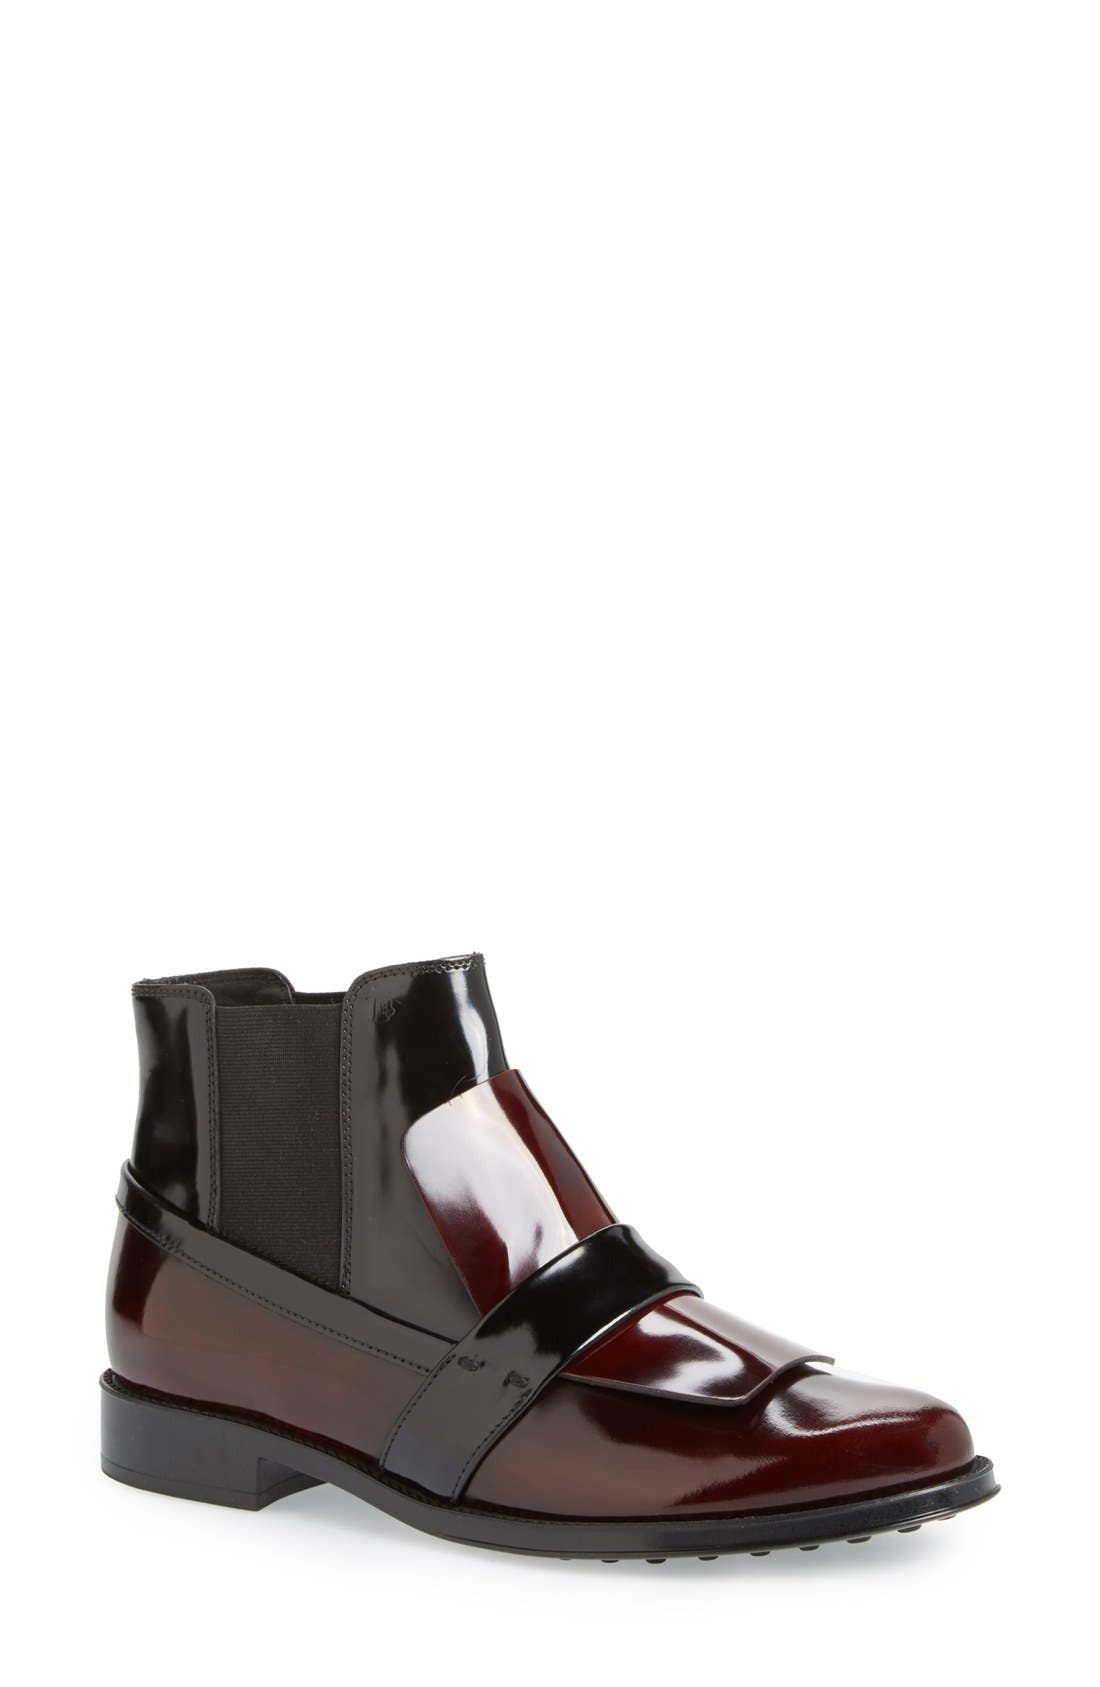 Alternate Image 1 Selected - Tod's Mask Chelsea Bootie (Women)